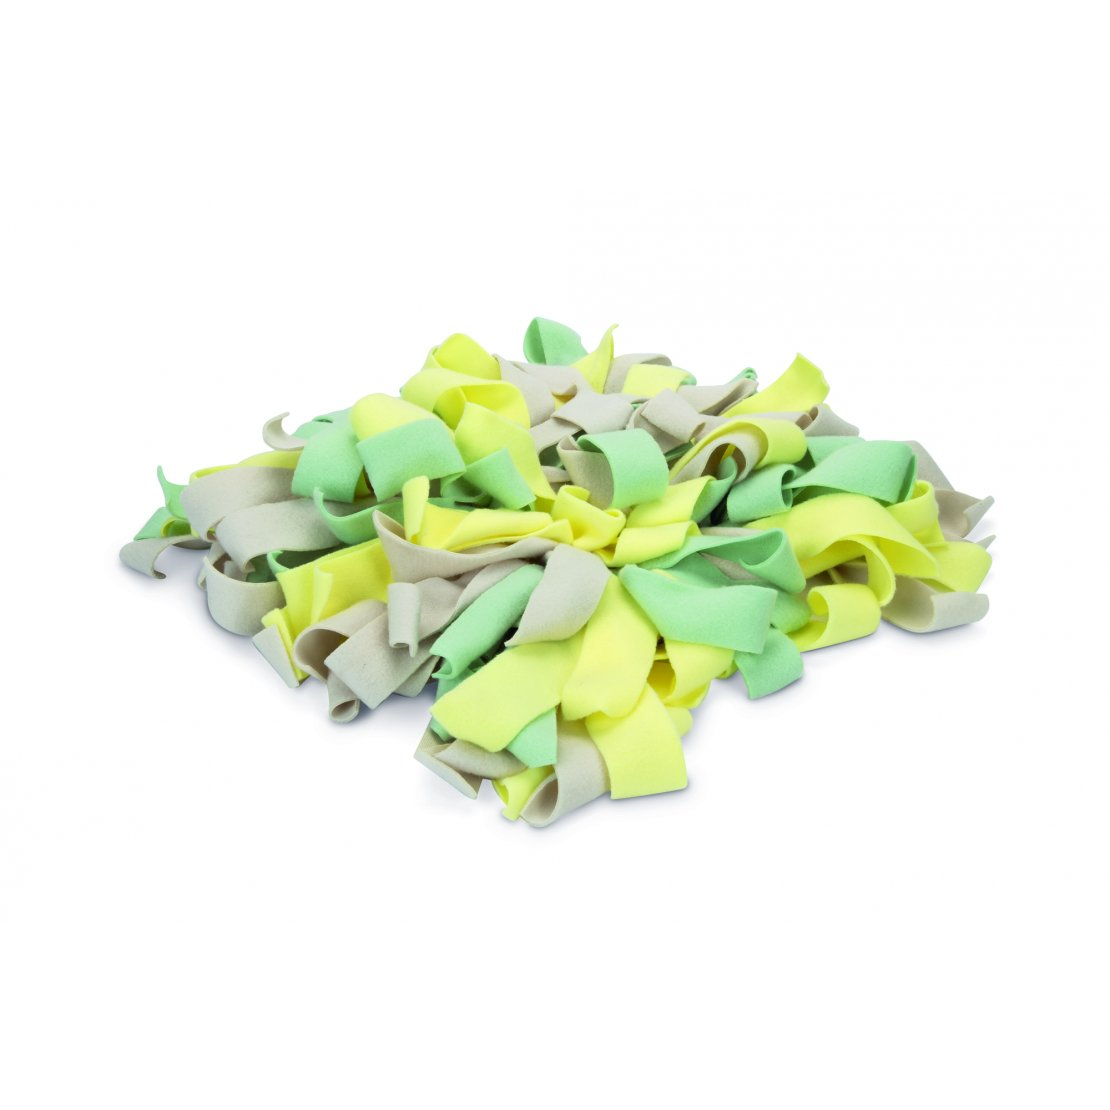 Beeztees Puppy Plush Snuffle Mat - Pica's Pets